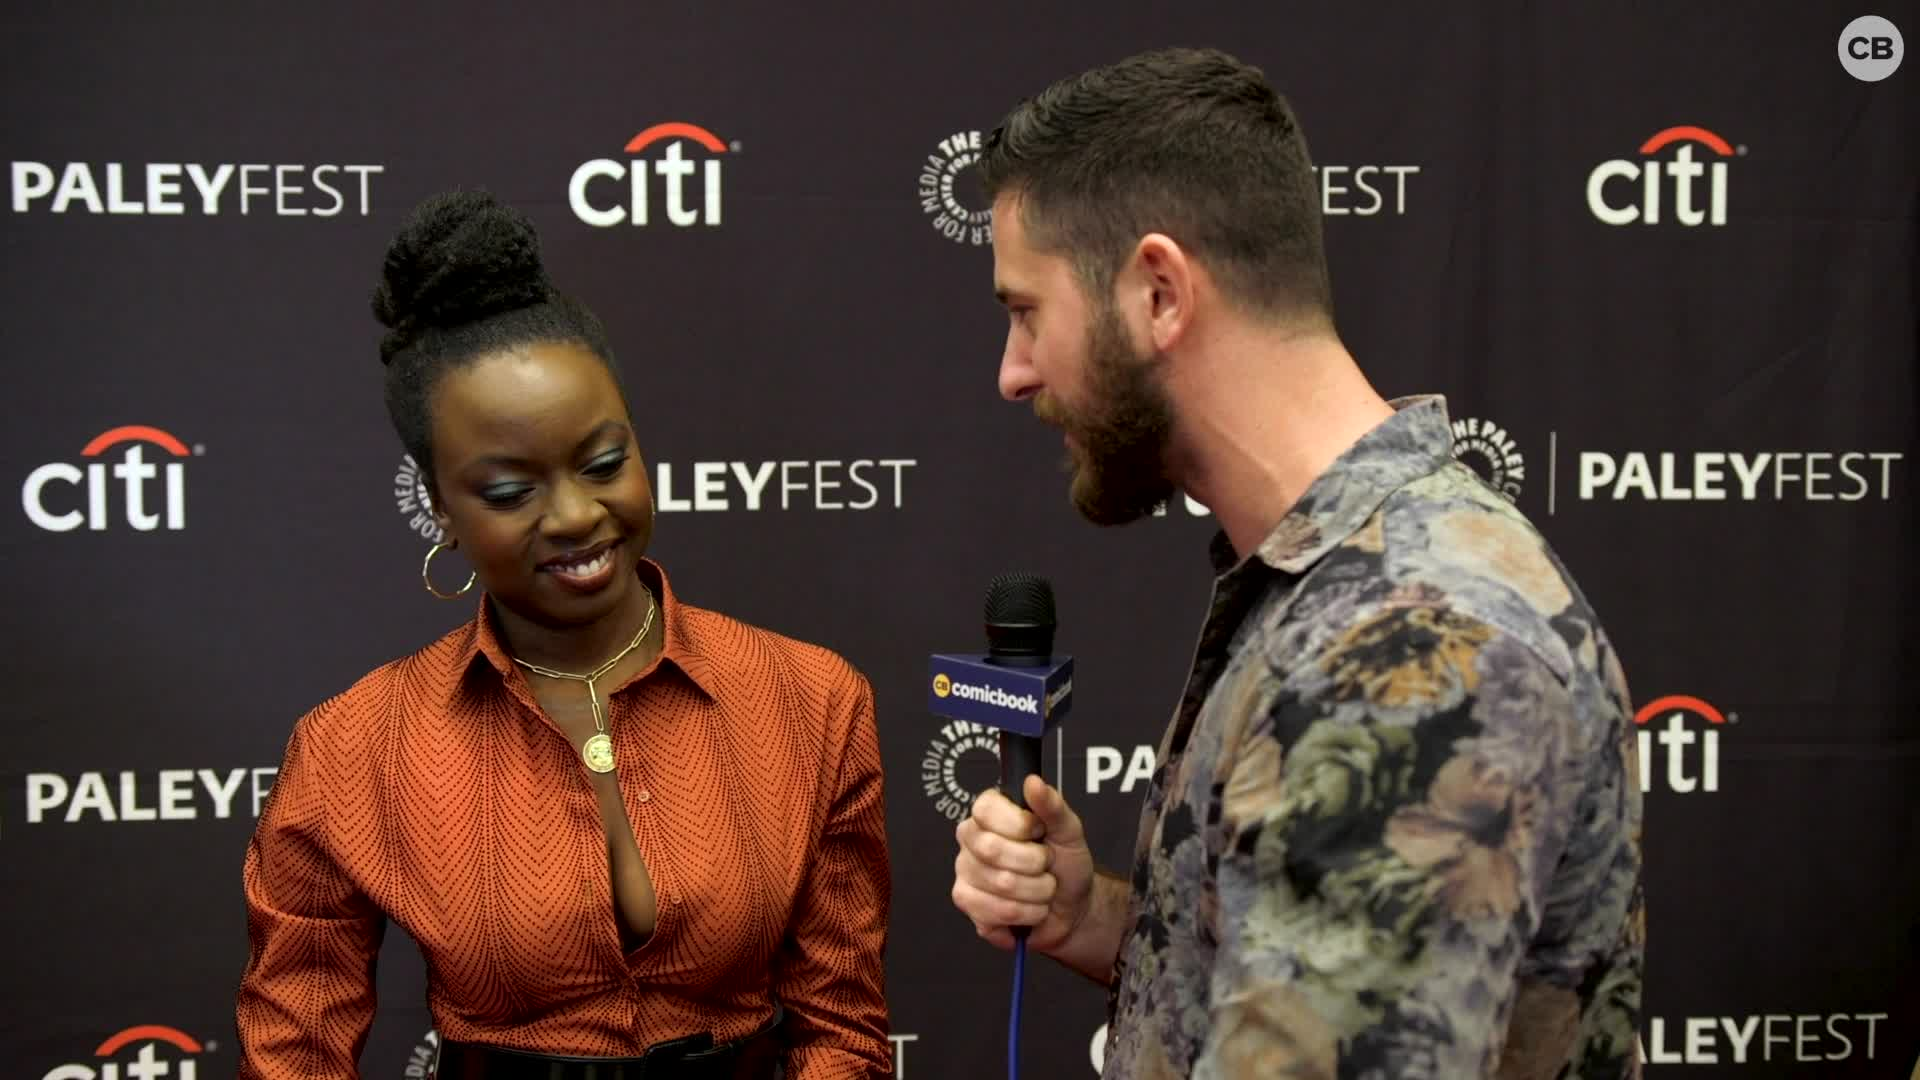 Danai Gurira - NYCC 2019 Exclusive Interview screen capture